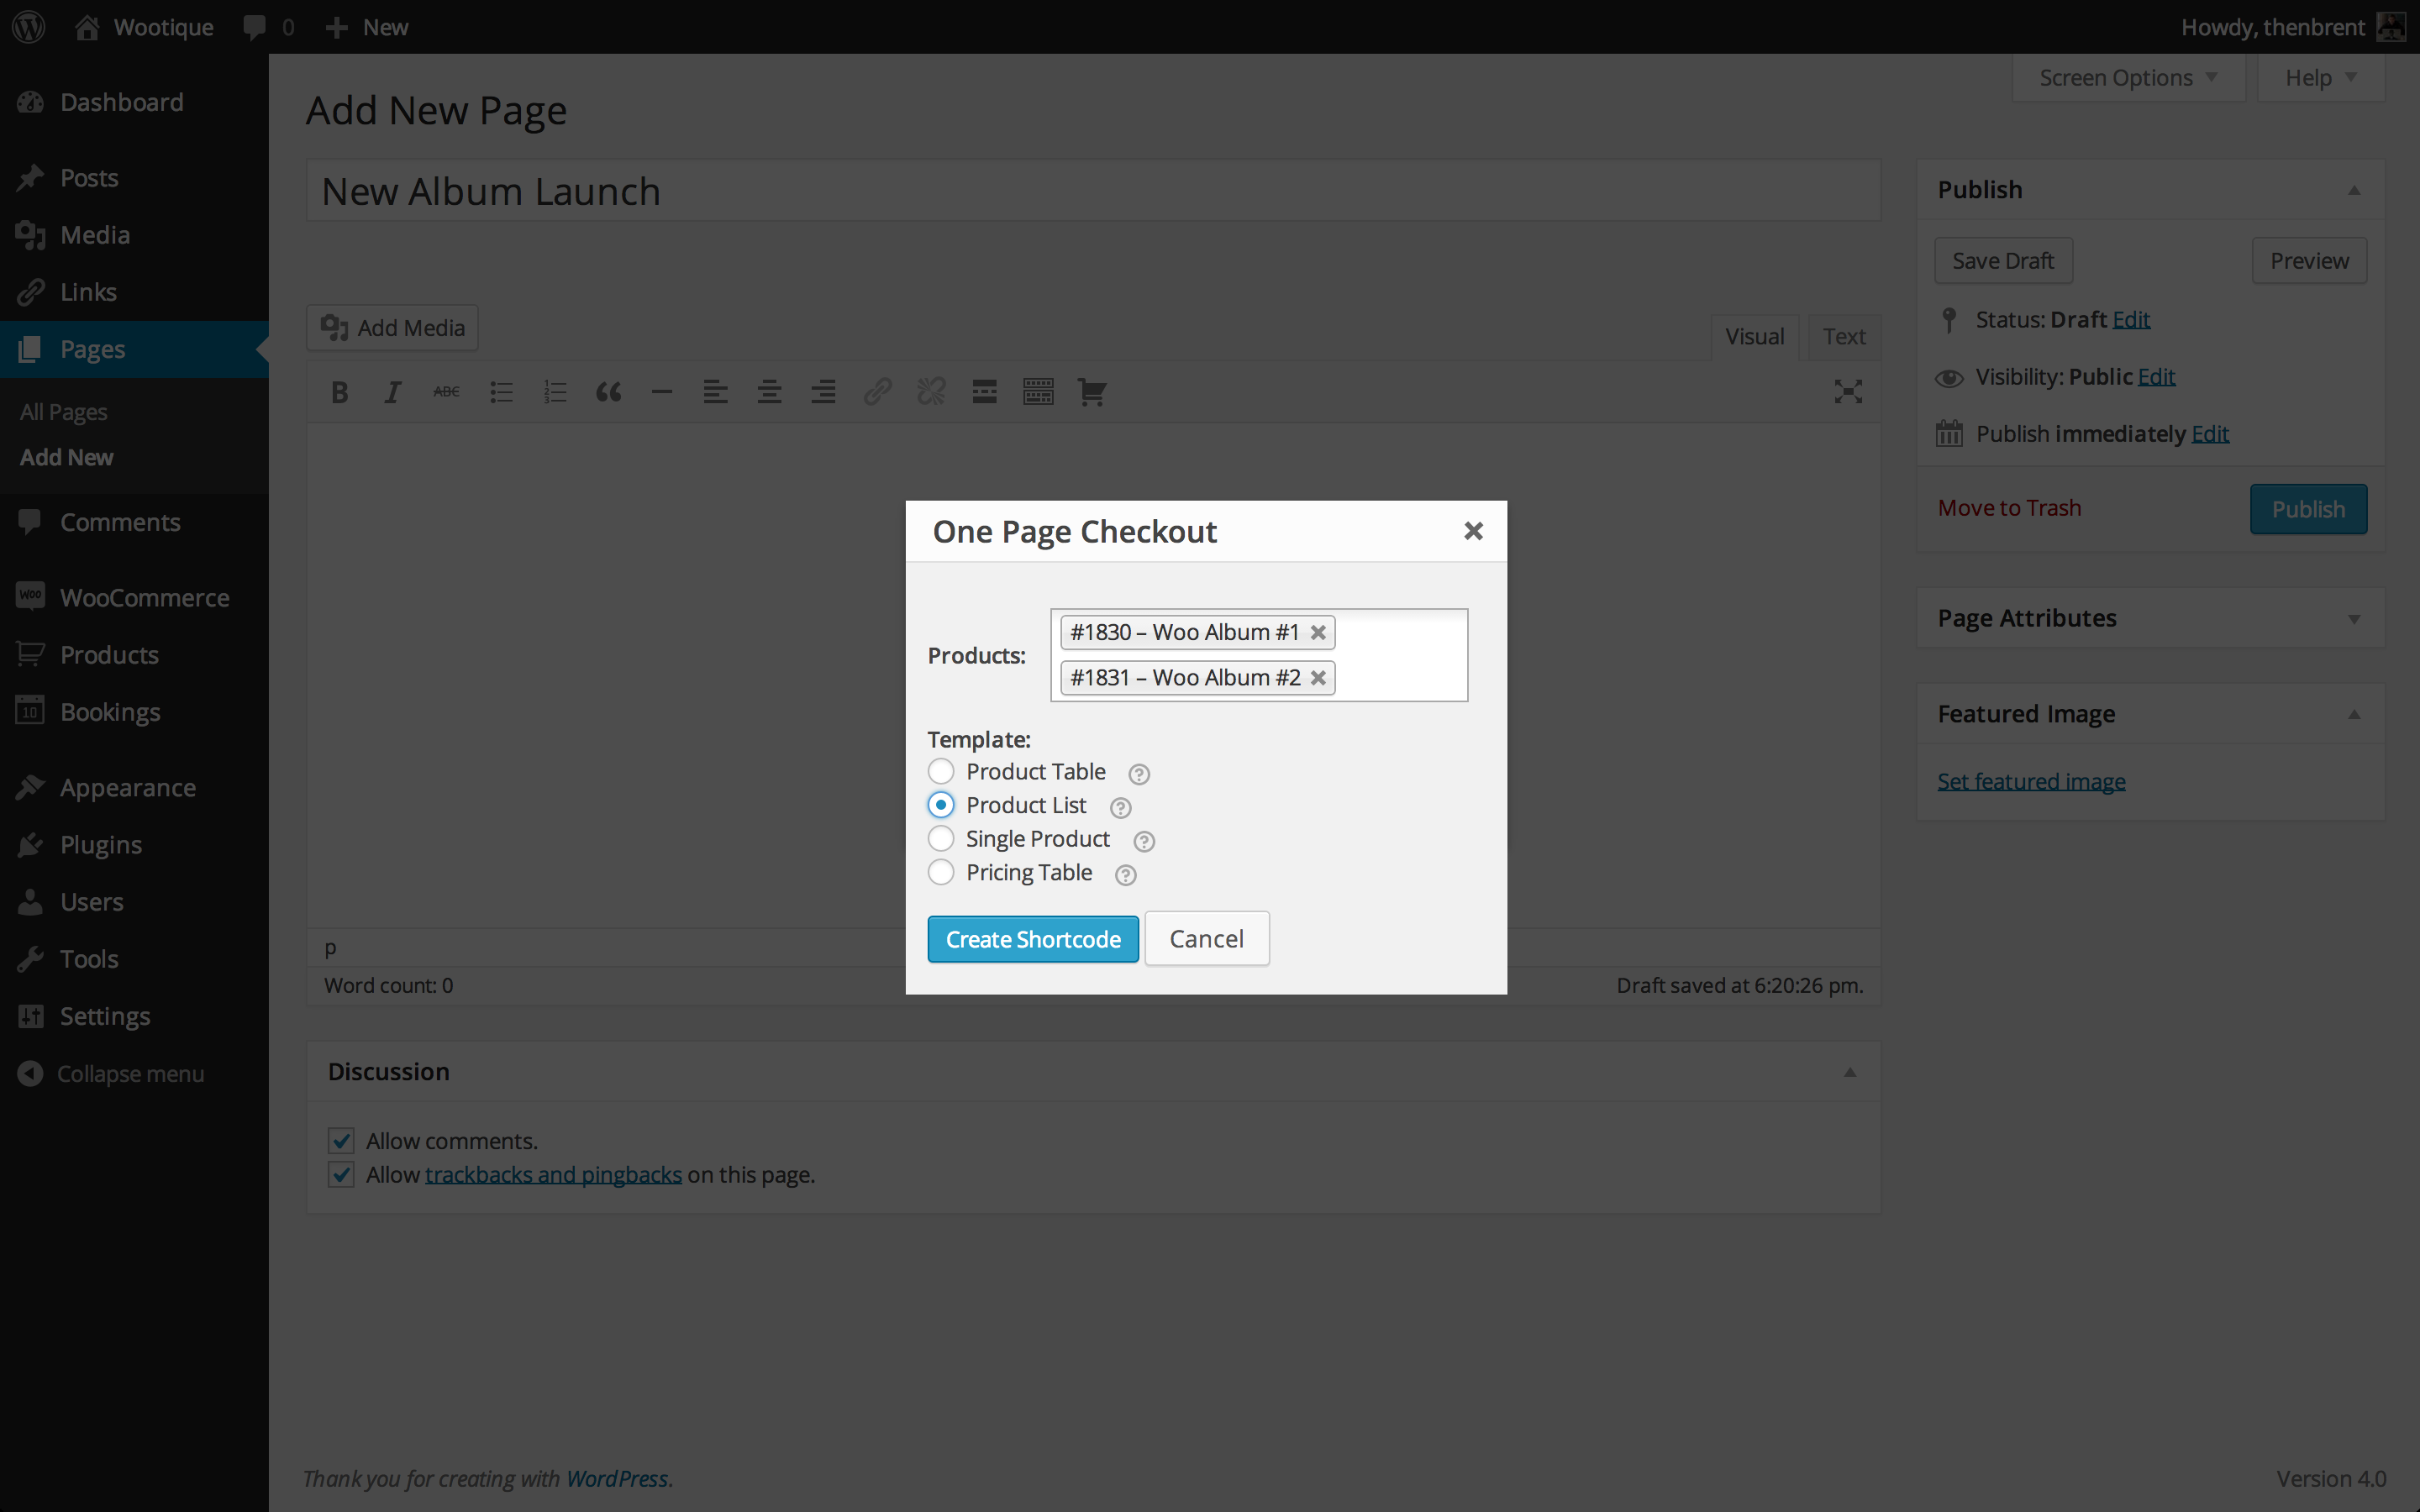 One Page Checkout Shortcode Graphical Interface